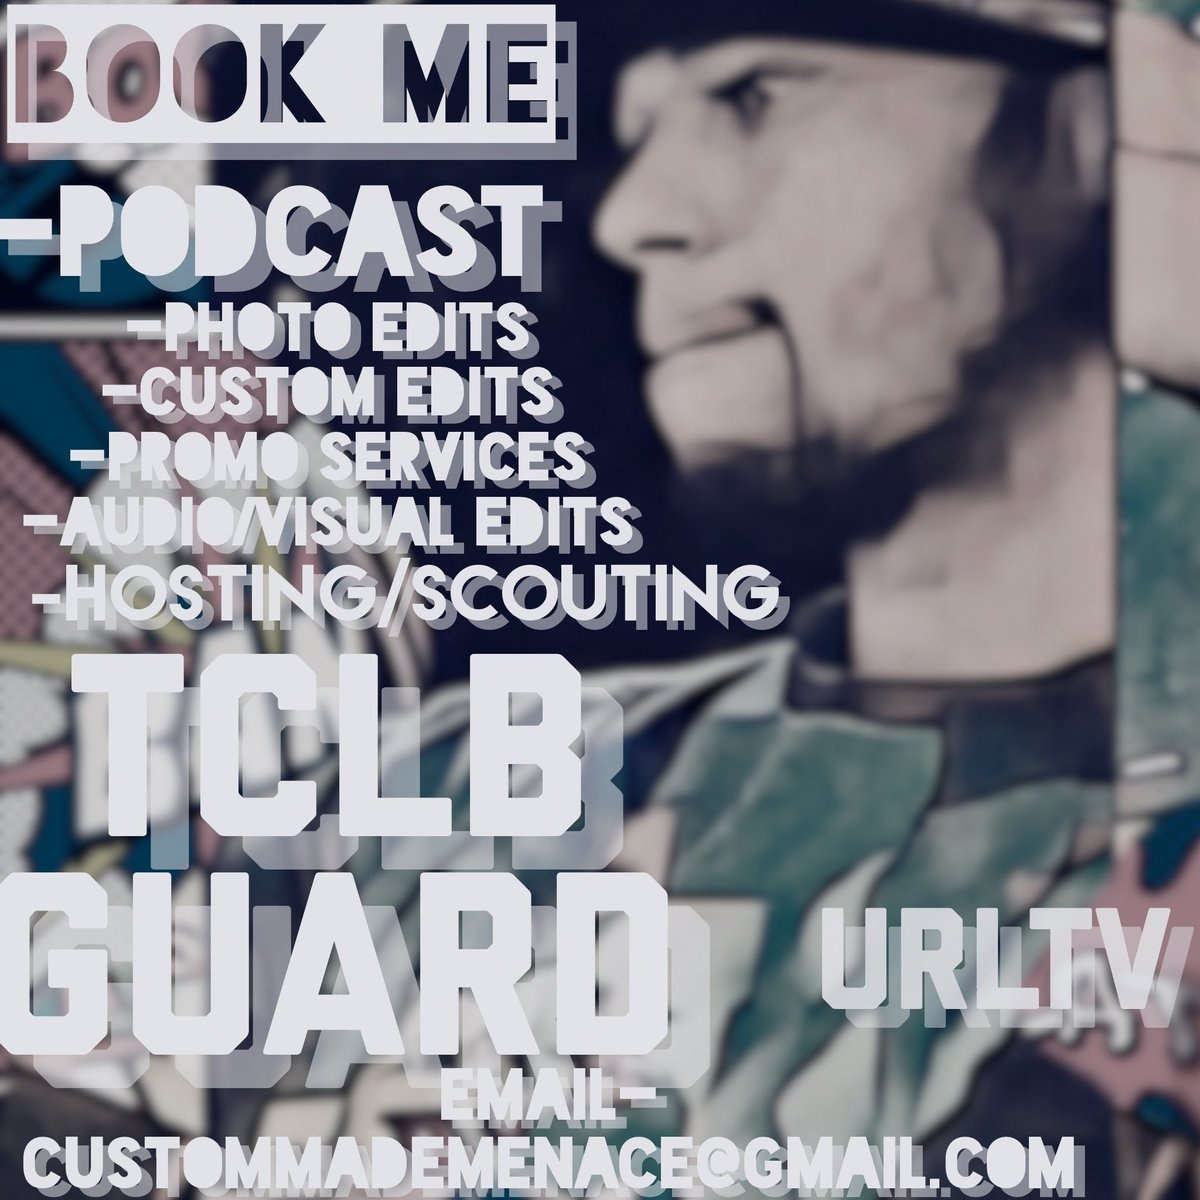 BOOK ME,consistent work behind ya brand.My Rep speaks for itself #MostReliable #IfIAintWorkinImWorkin #TCBL #URL #TRL #GUARD #StayCustomMade<br>http://pic.twitter.com/EregWUJADp